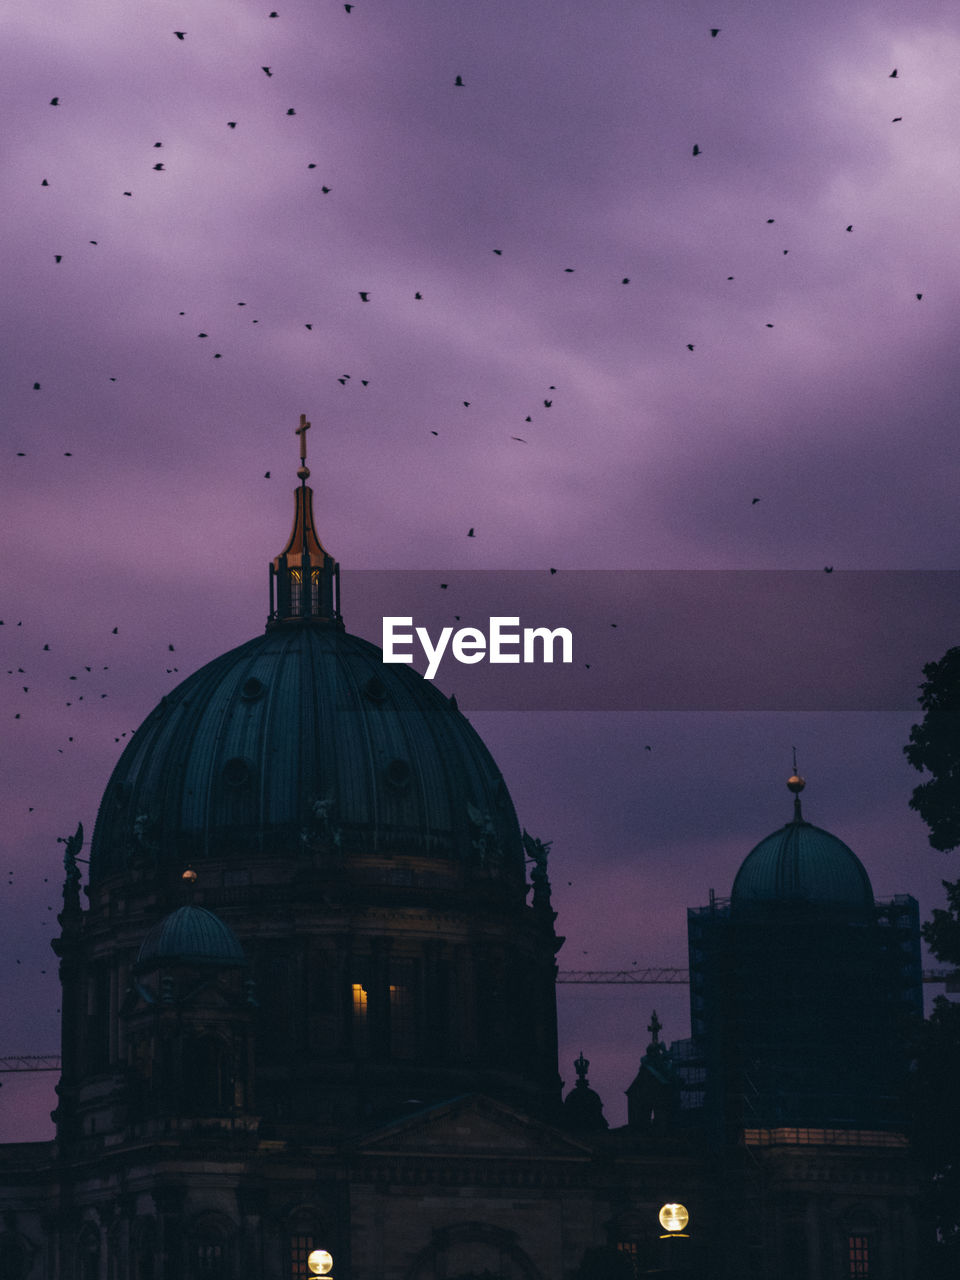 Berlin cathedral against birds flying in sky